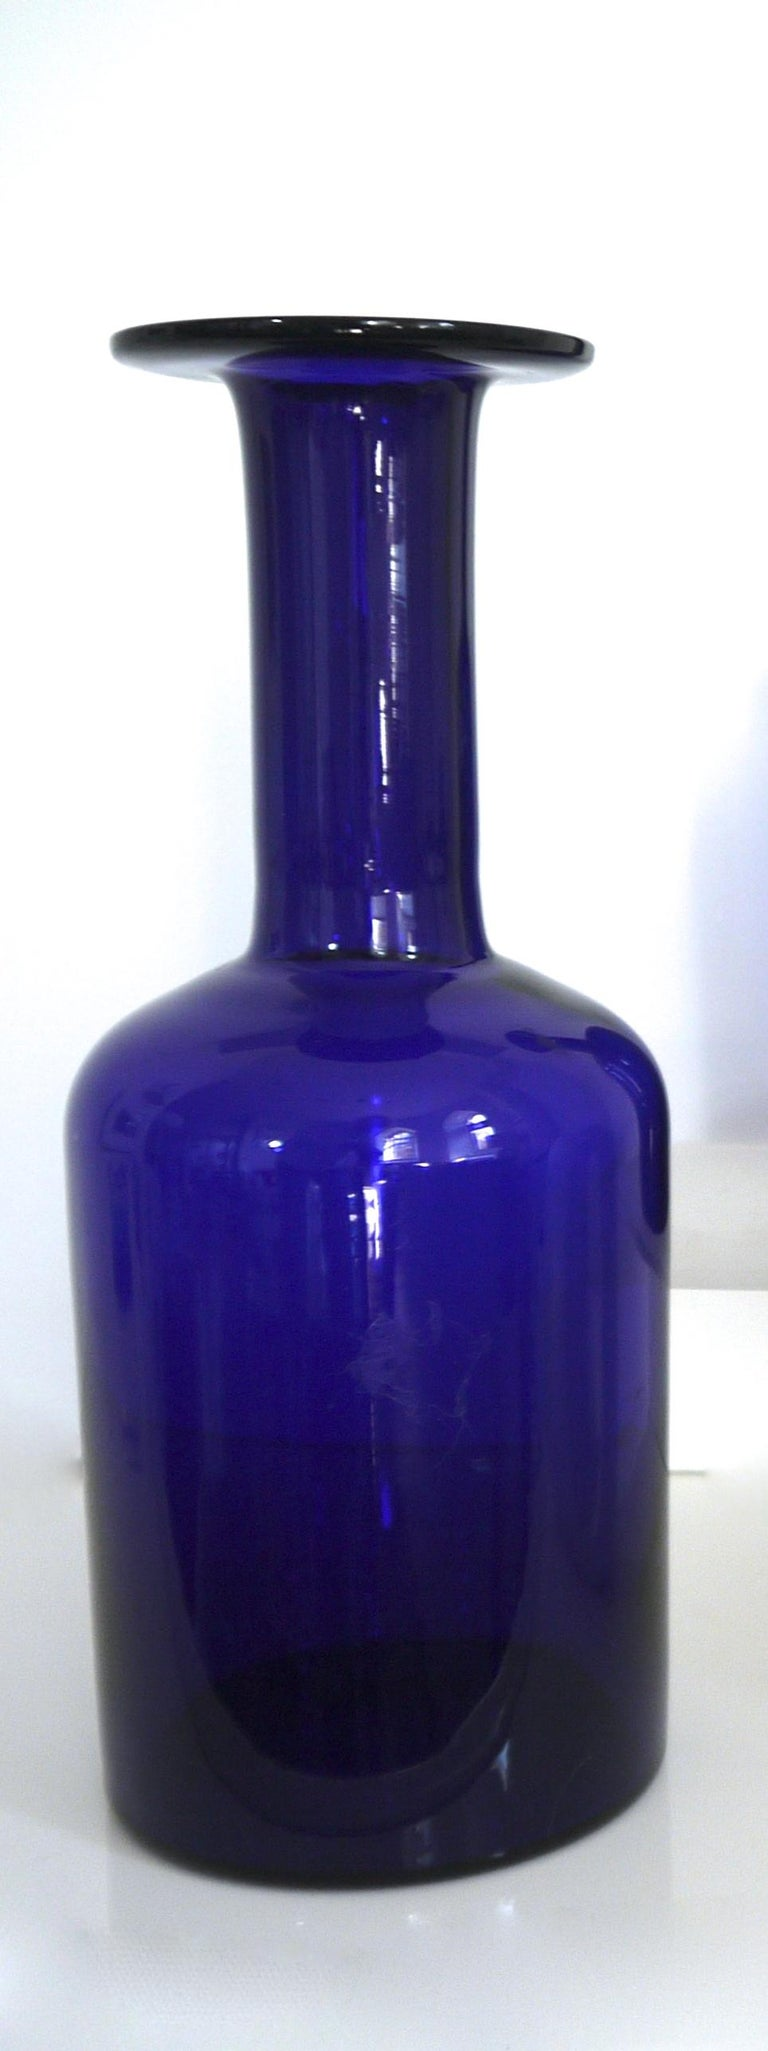 Art Glass Gulvases Blue Design 1962 by Otto Brauer Based on Per Lutkens Version from 1958 For Sale